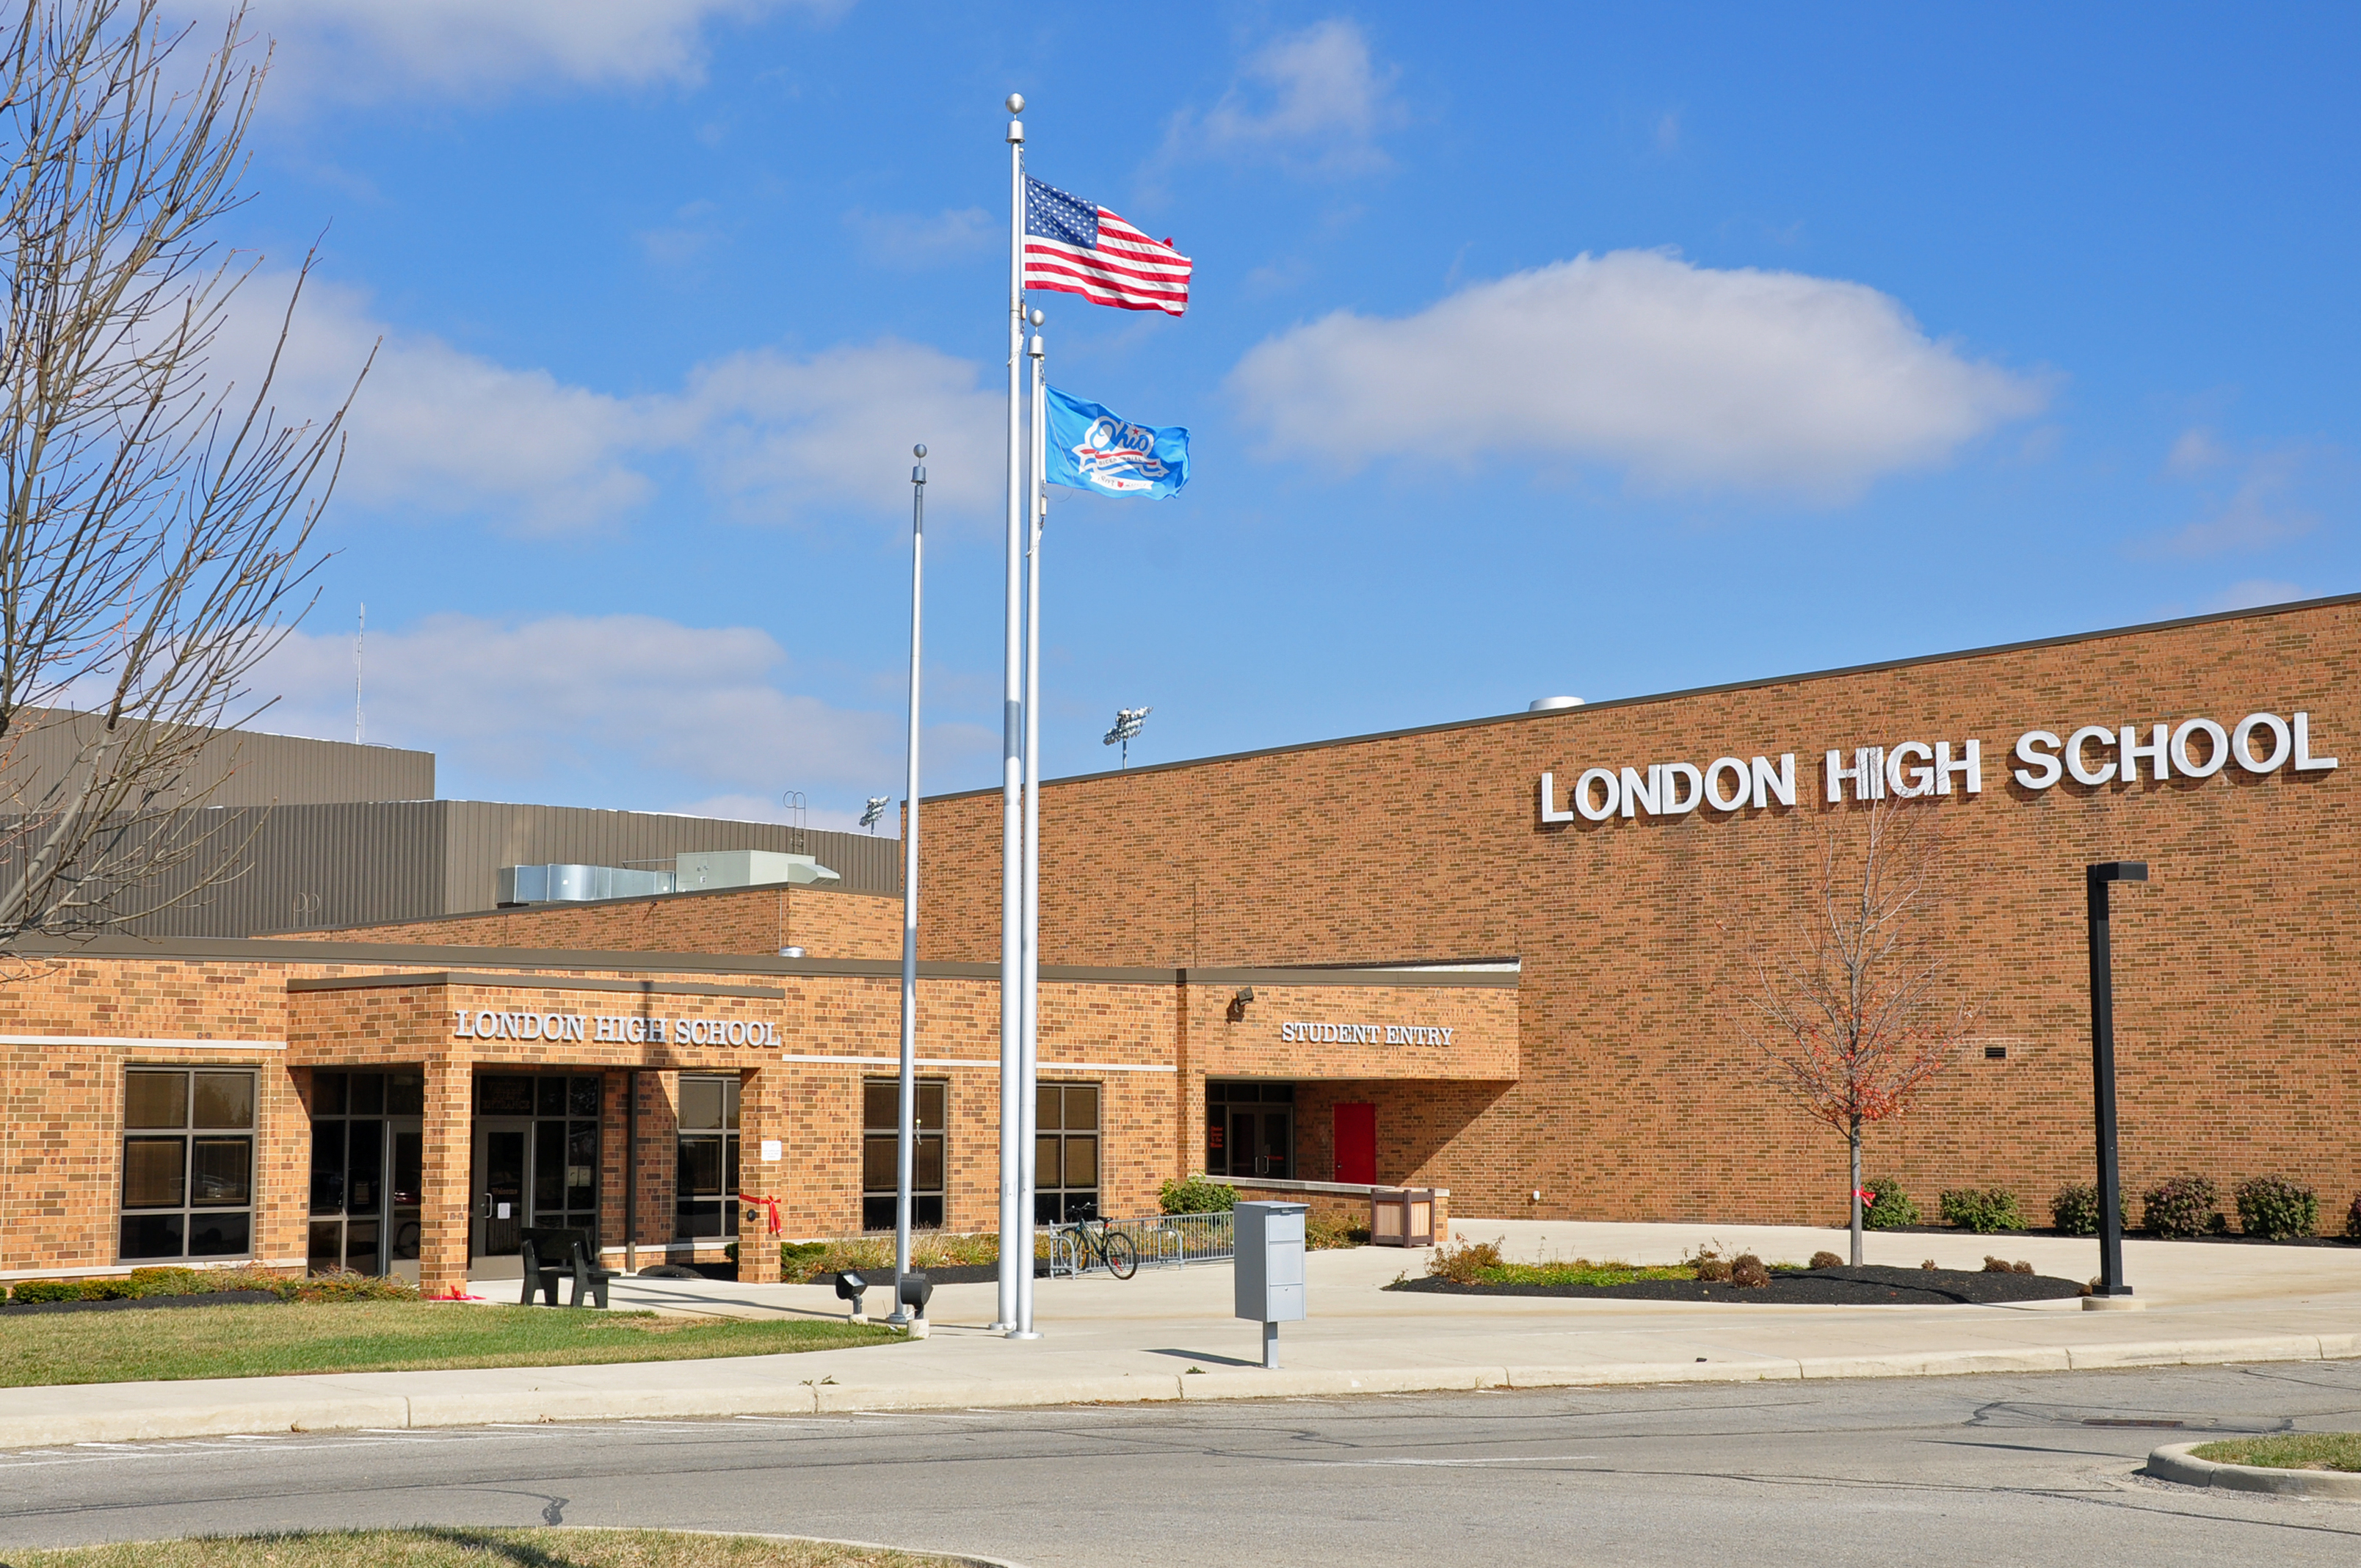 Description london high school - london ohio